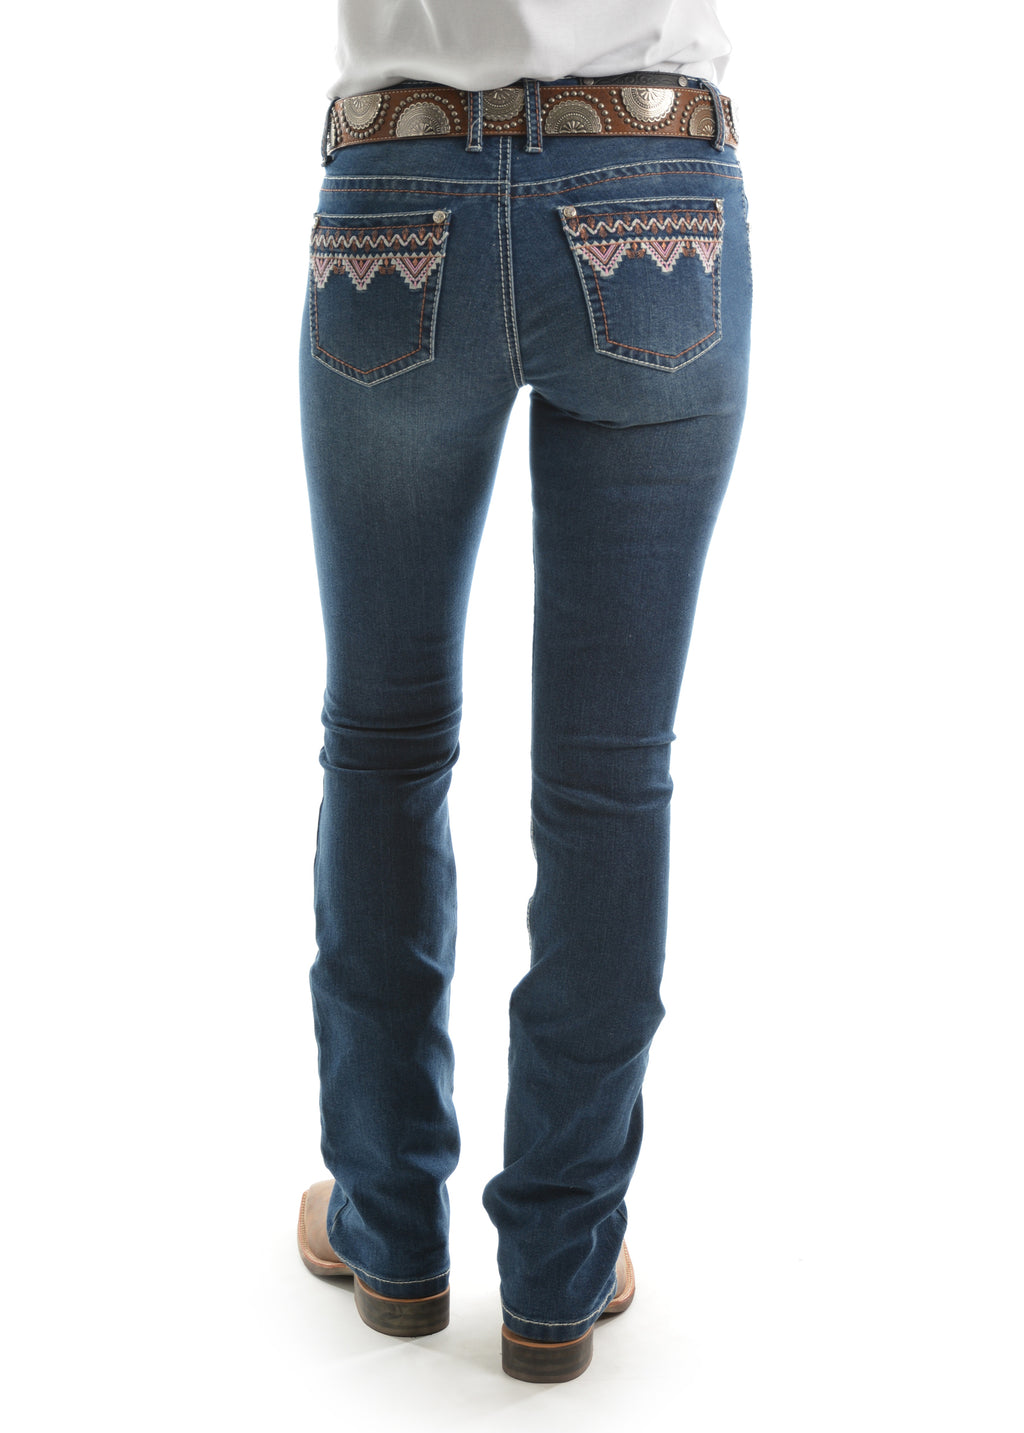 Pure Western | Jeans | Bootcut | Waist Mid | Darcy - BK8 Outfitters Australia